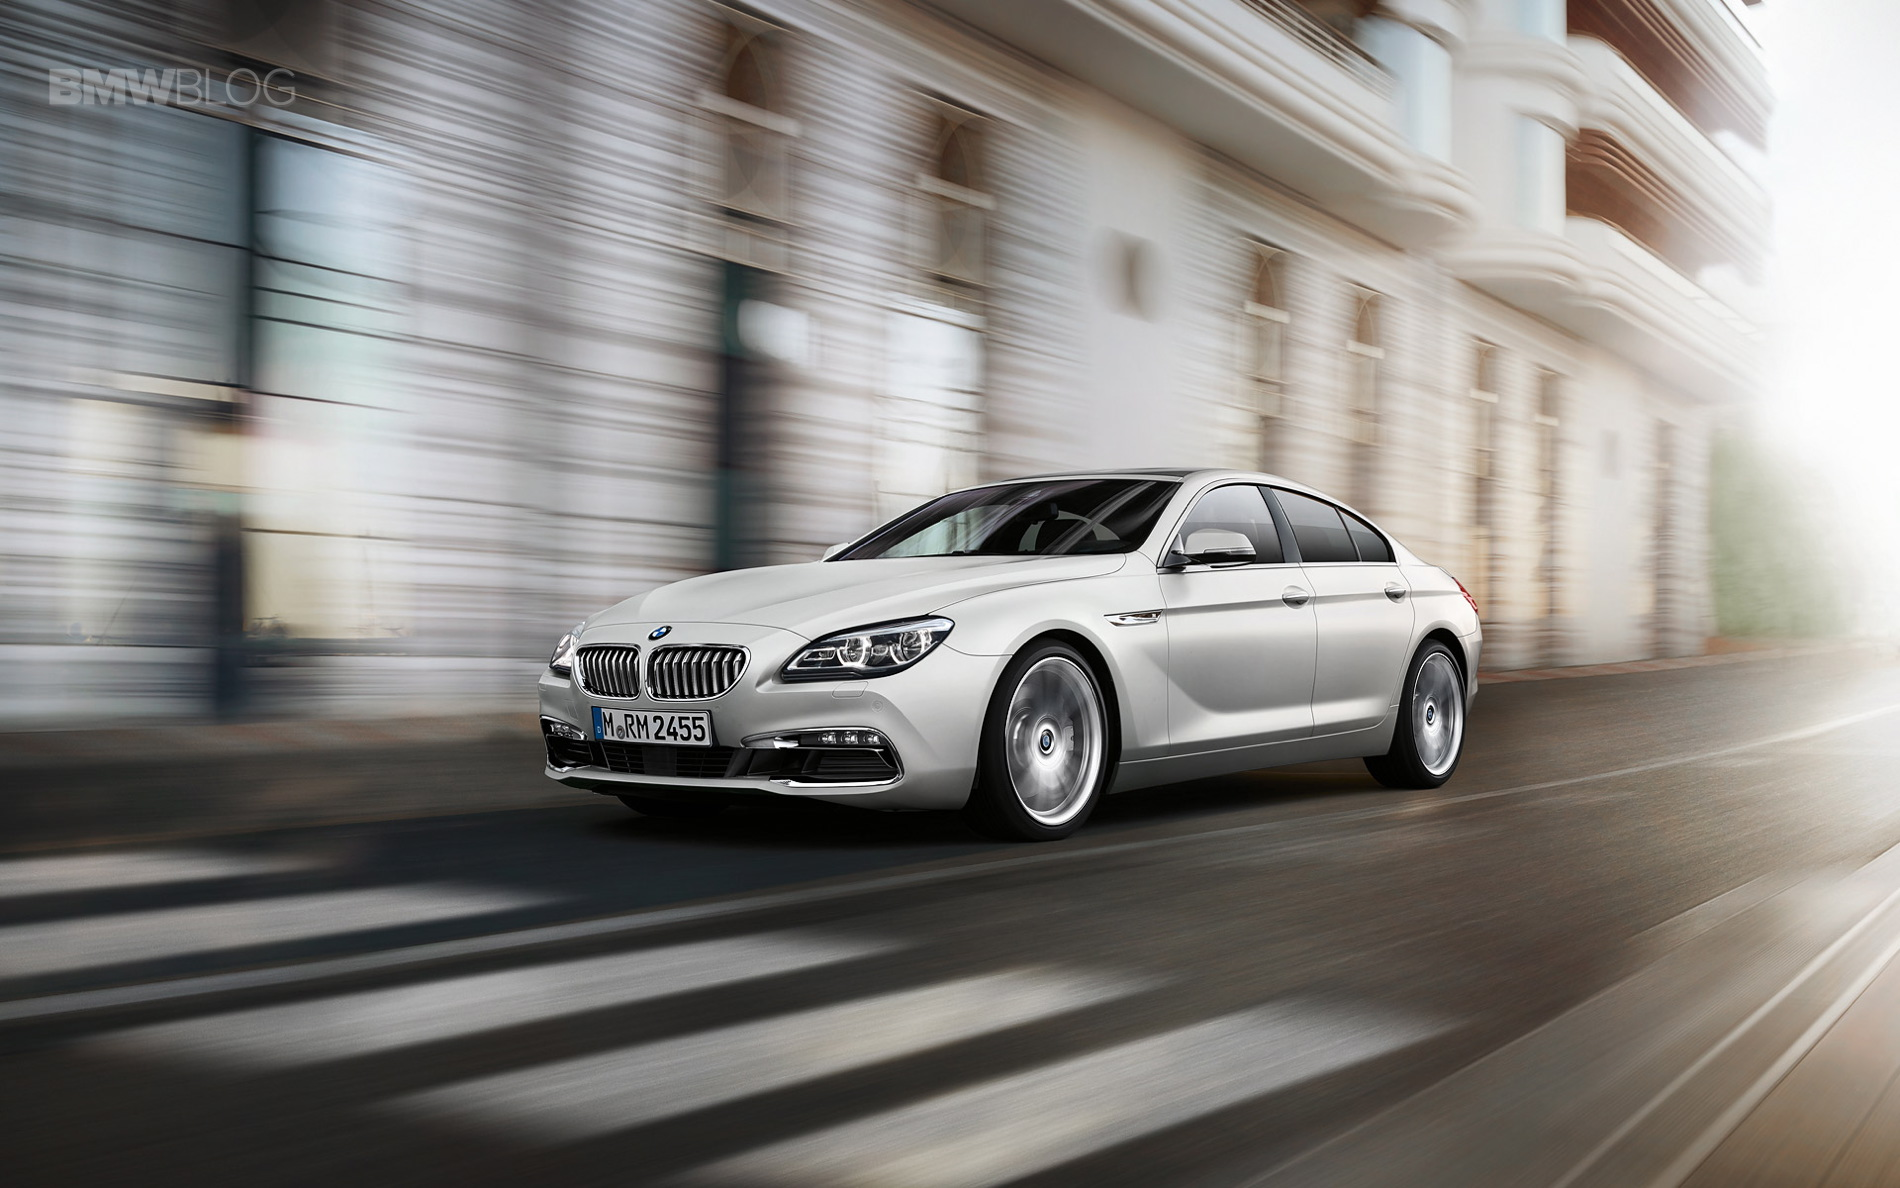 Bmw 6 Series Gran Coupe Hd Wallpaper ✓ The Galleries of HD Wallpaper